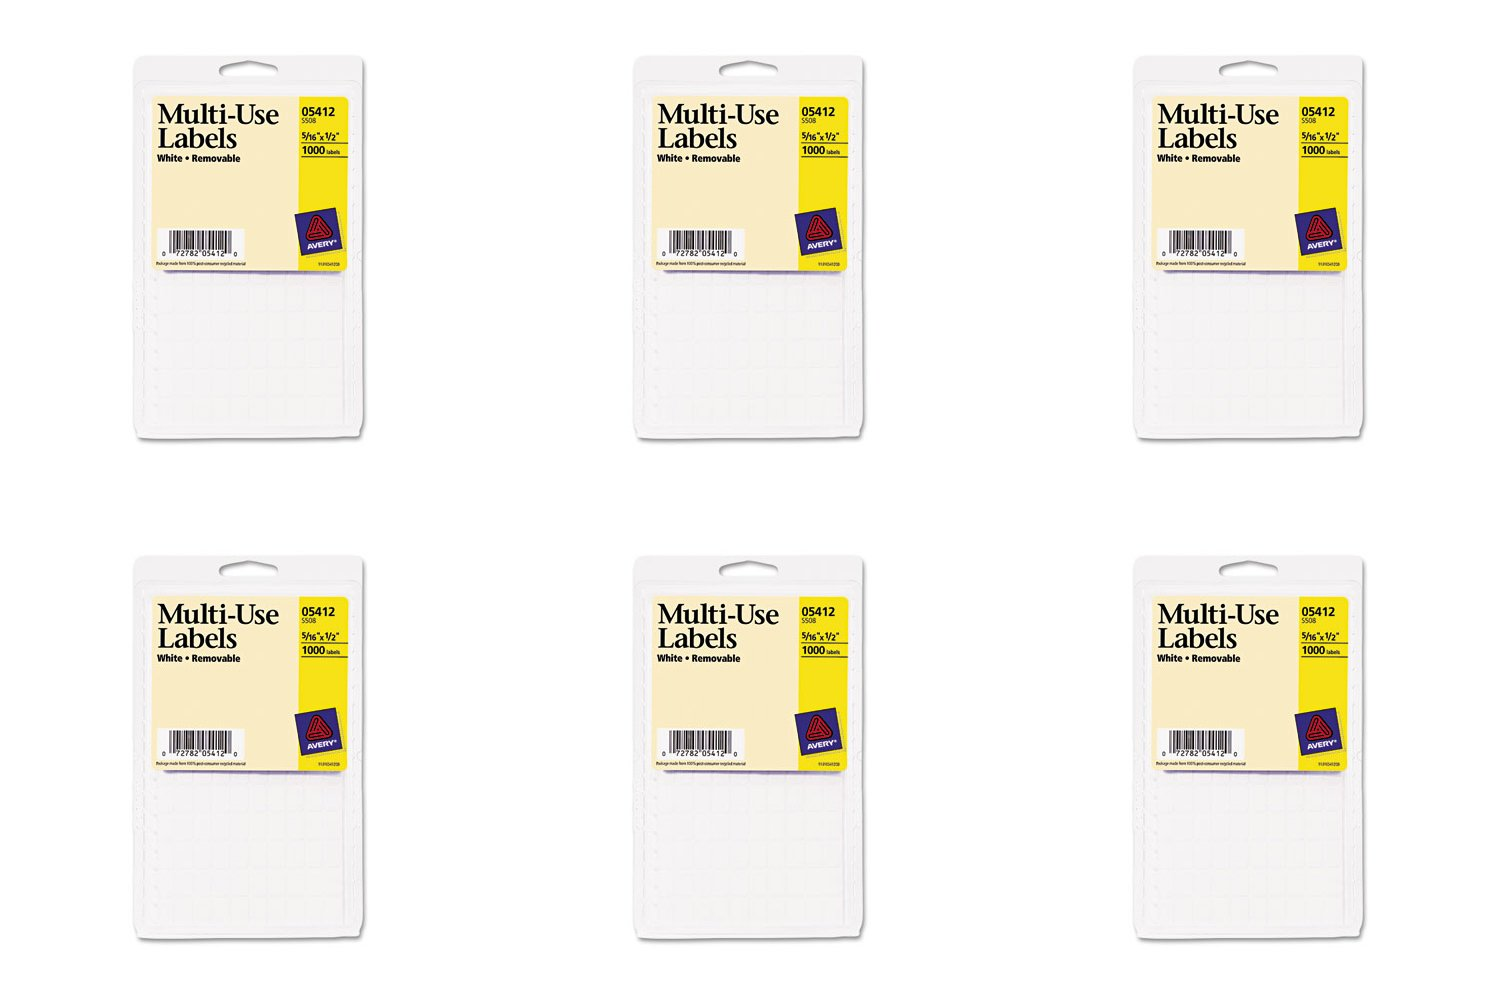 Avery Removable Rectangular Labels, 0.31 x 0.5 Inches, White, Pack of 1100 (5412), 6 Packs